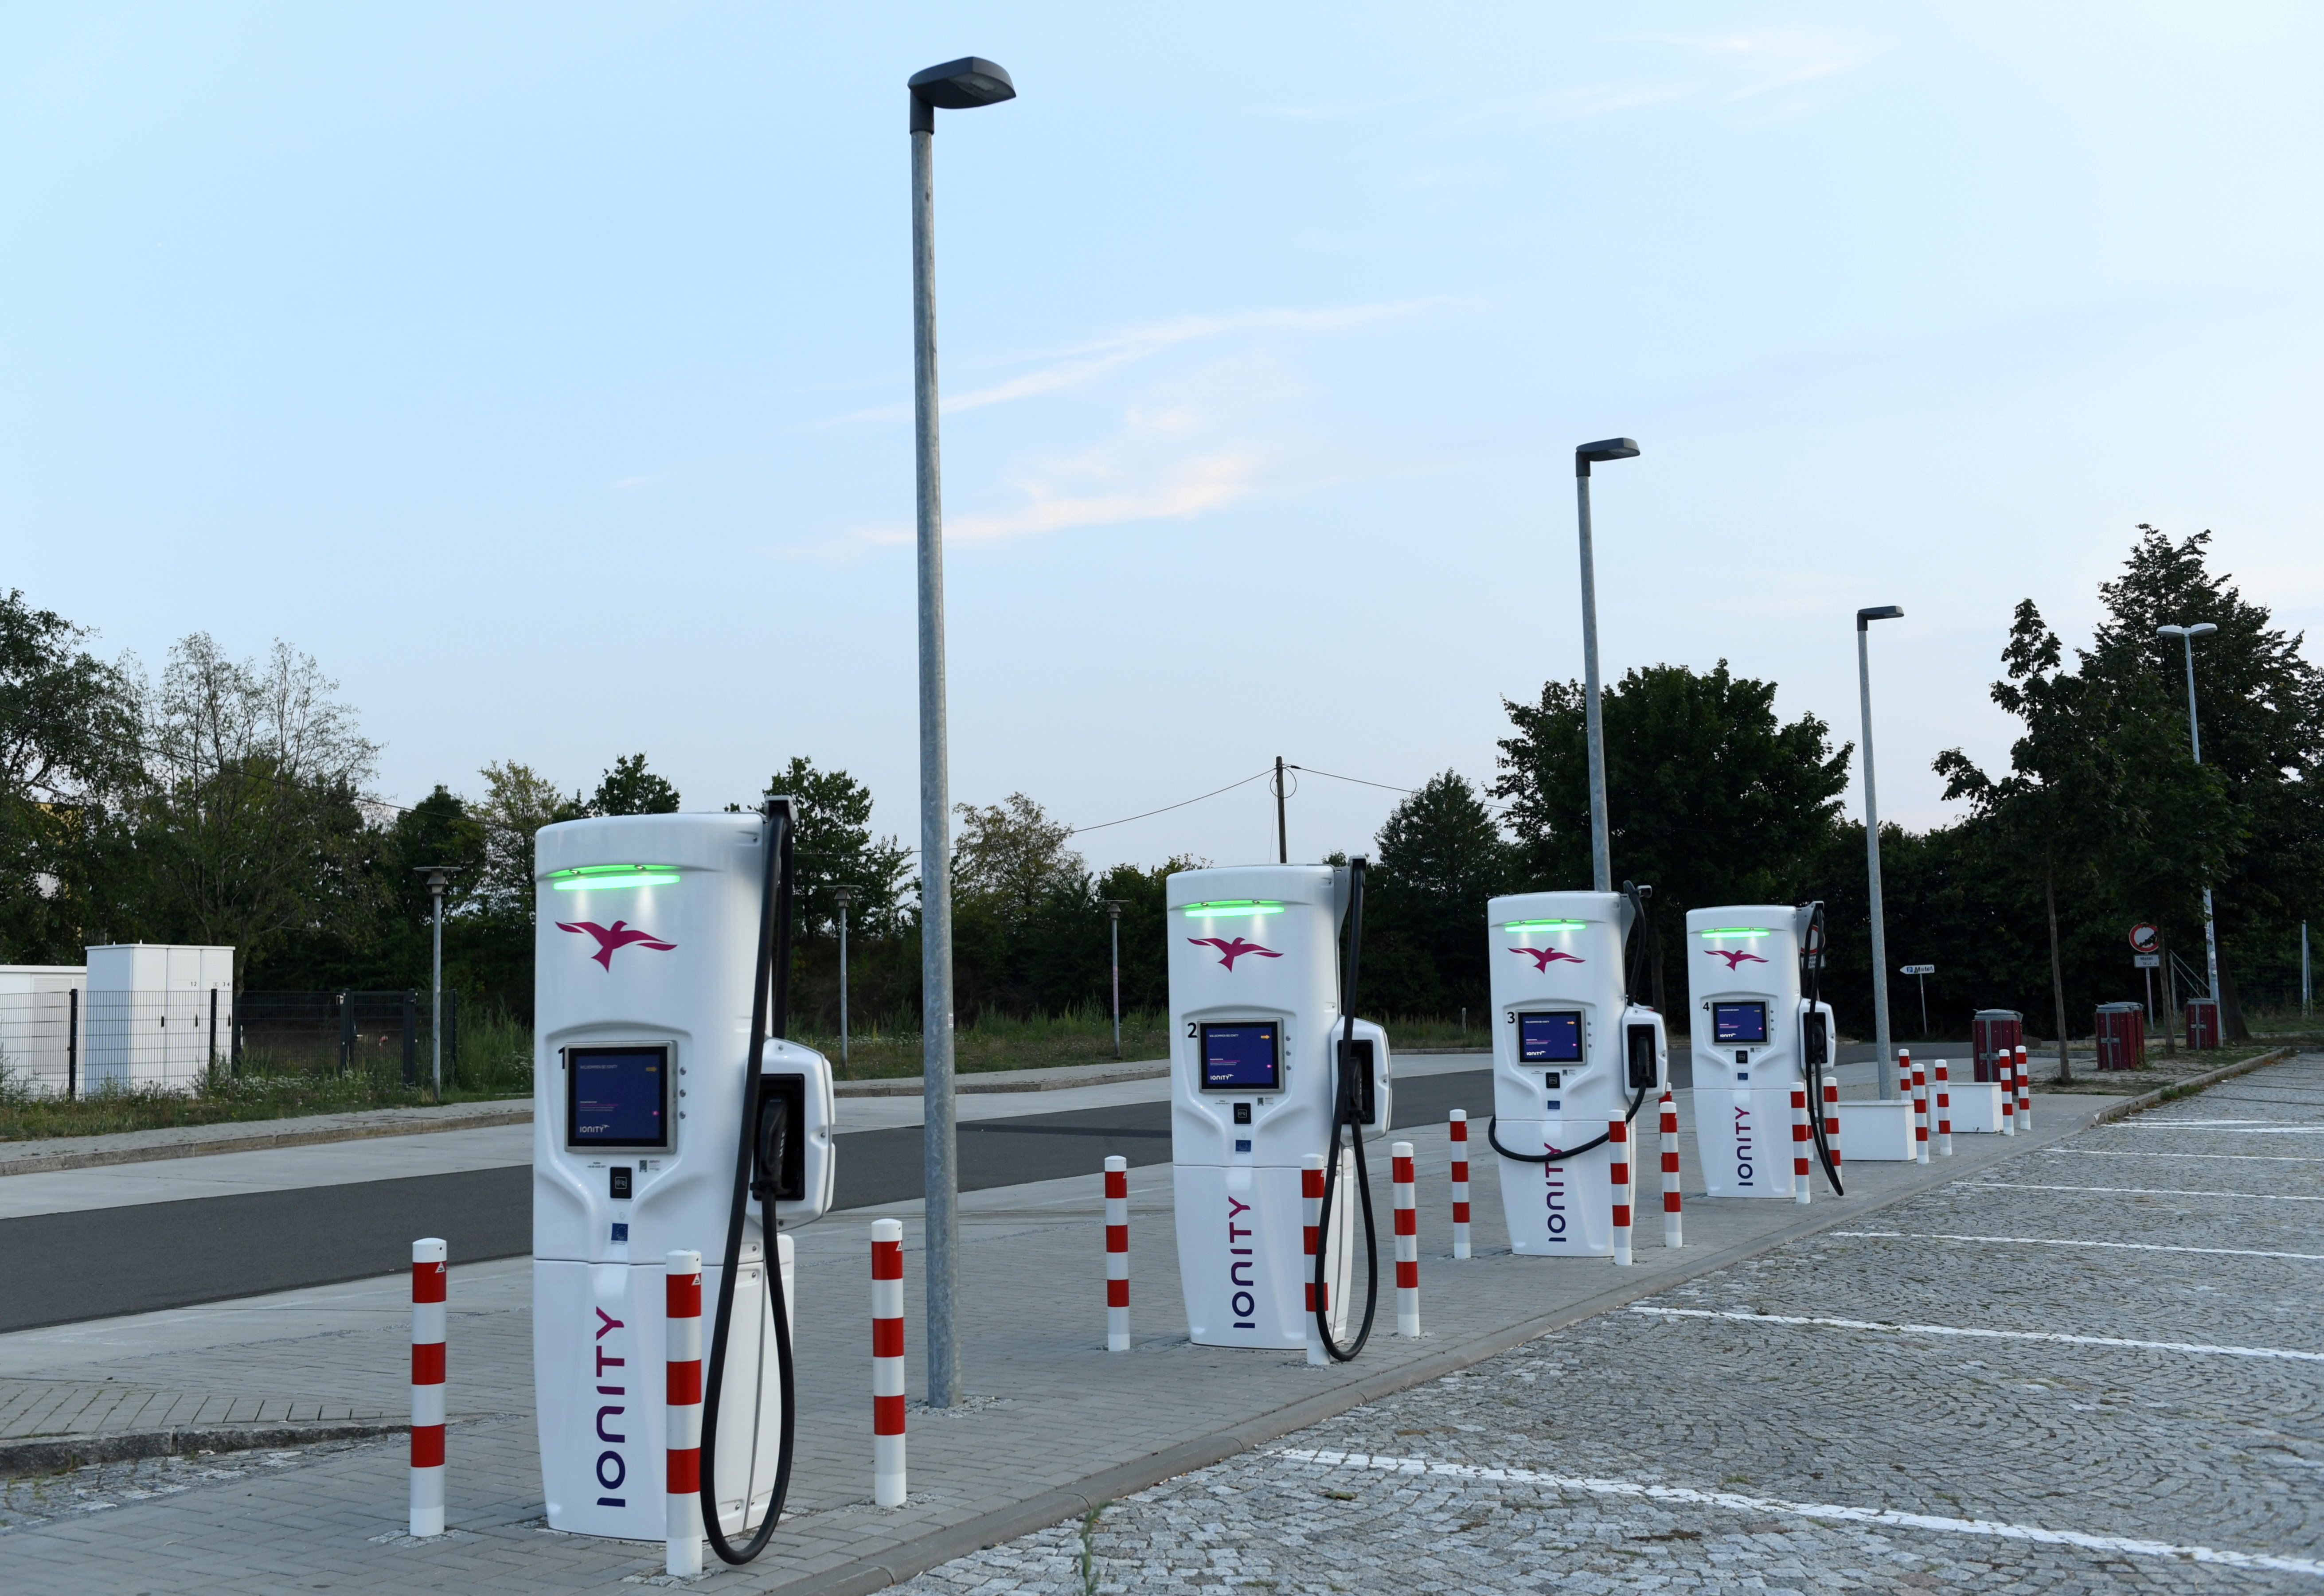 An Ionity electric vehicle charging station is pictured on the motorway service station